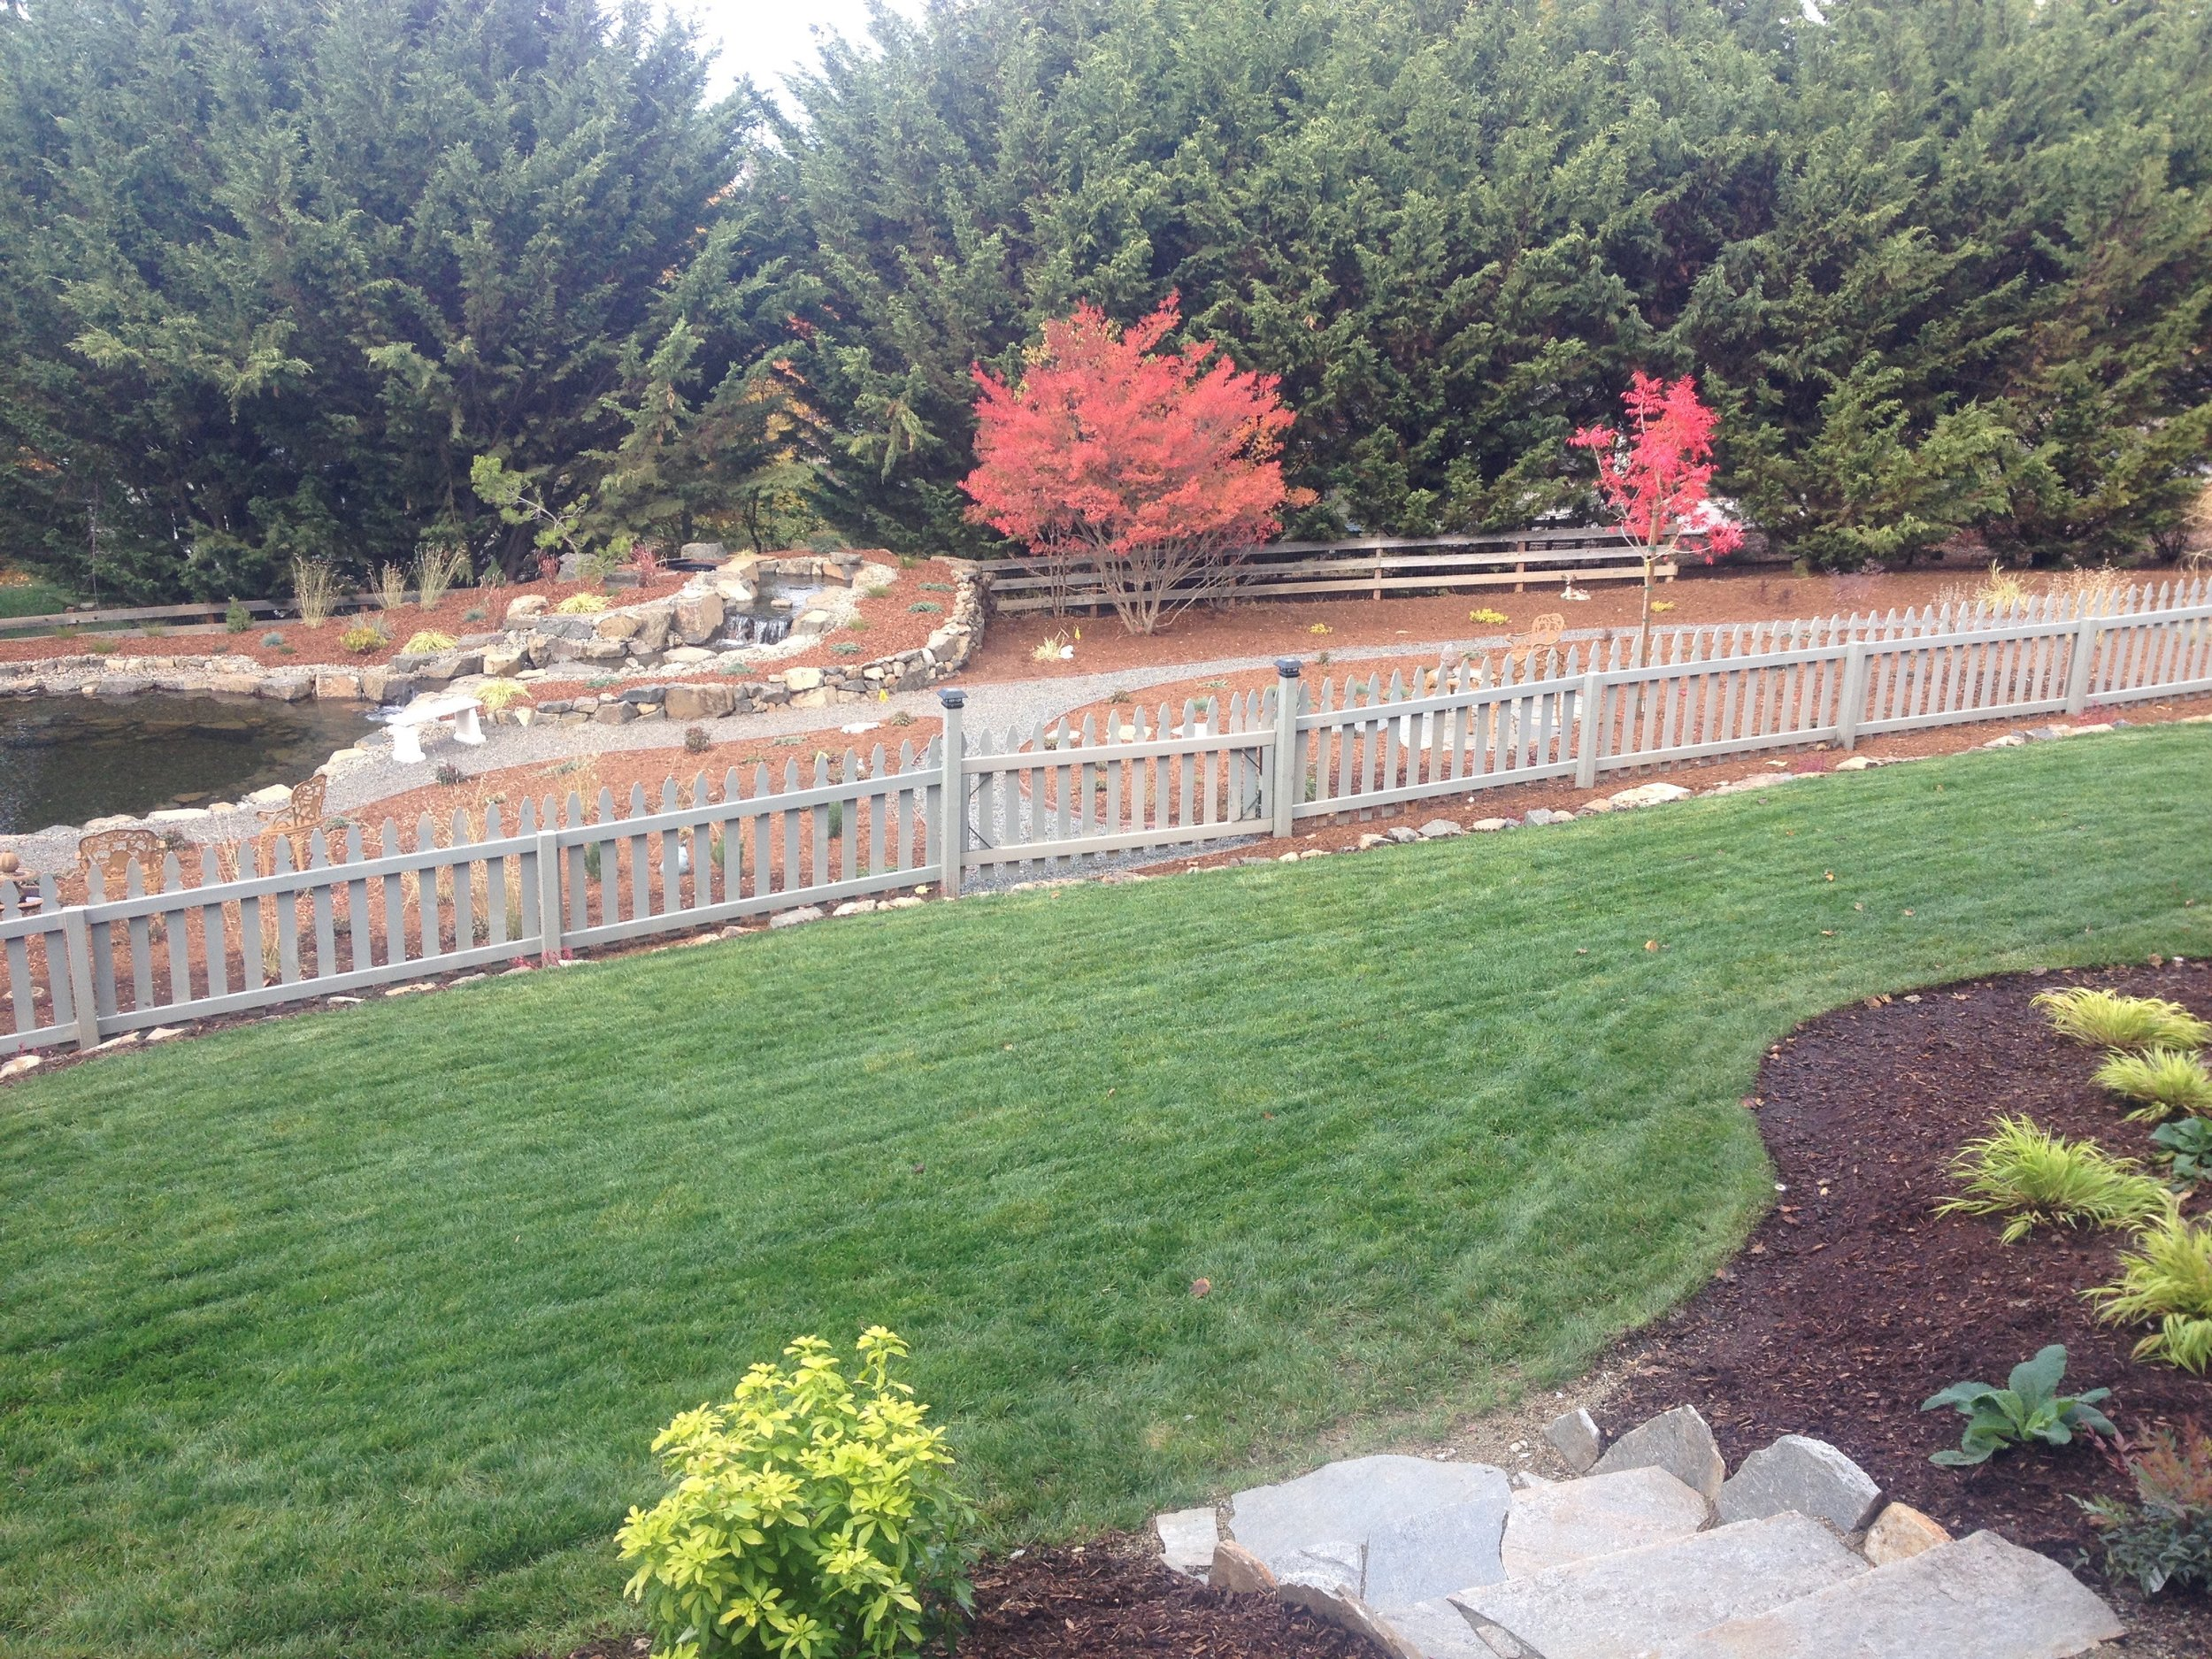 Lawn Care - We analyze your lawn and design a tailored approach to help your lawn flourish. We also install low water grasses and Dream Turf, a synthetic turf grass.